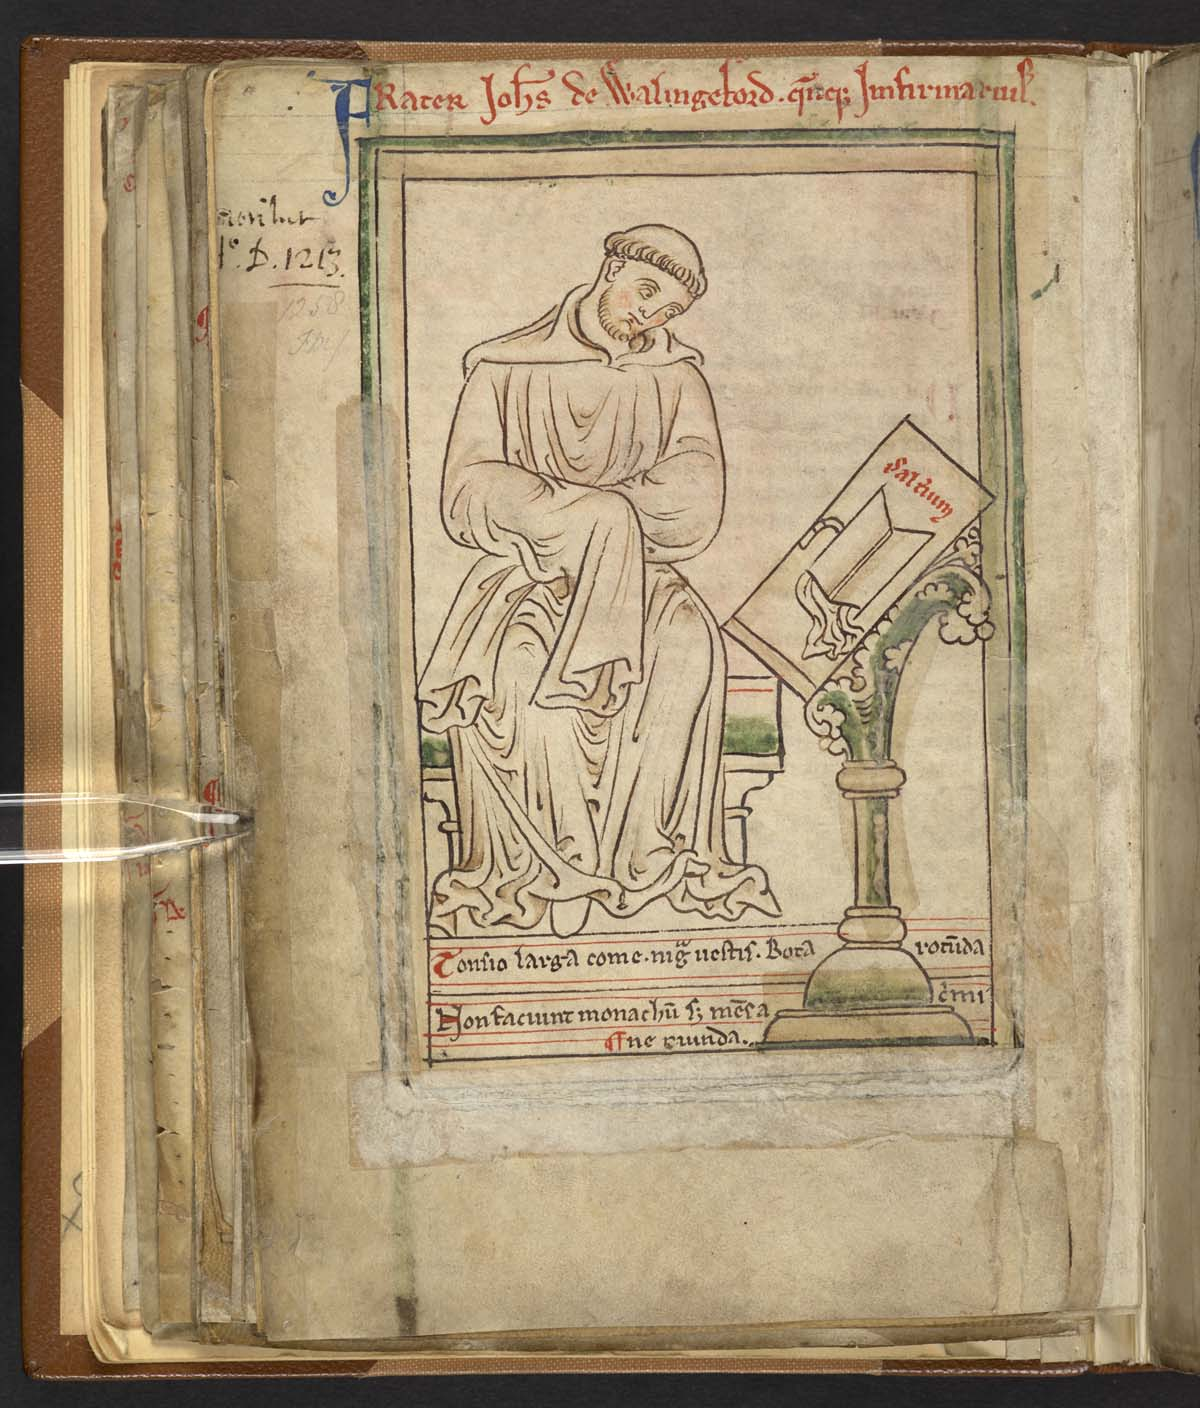 medieval drawing of a monk next to a pulpit or stand